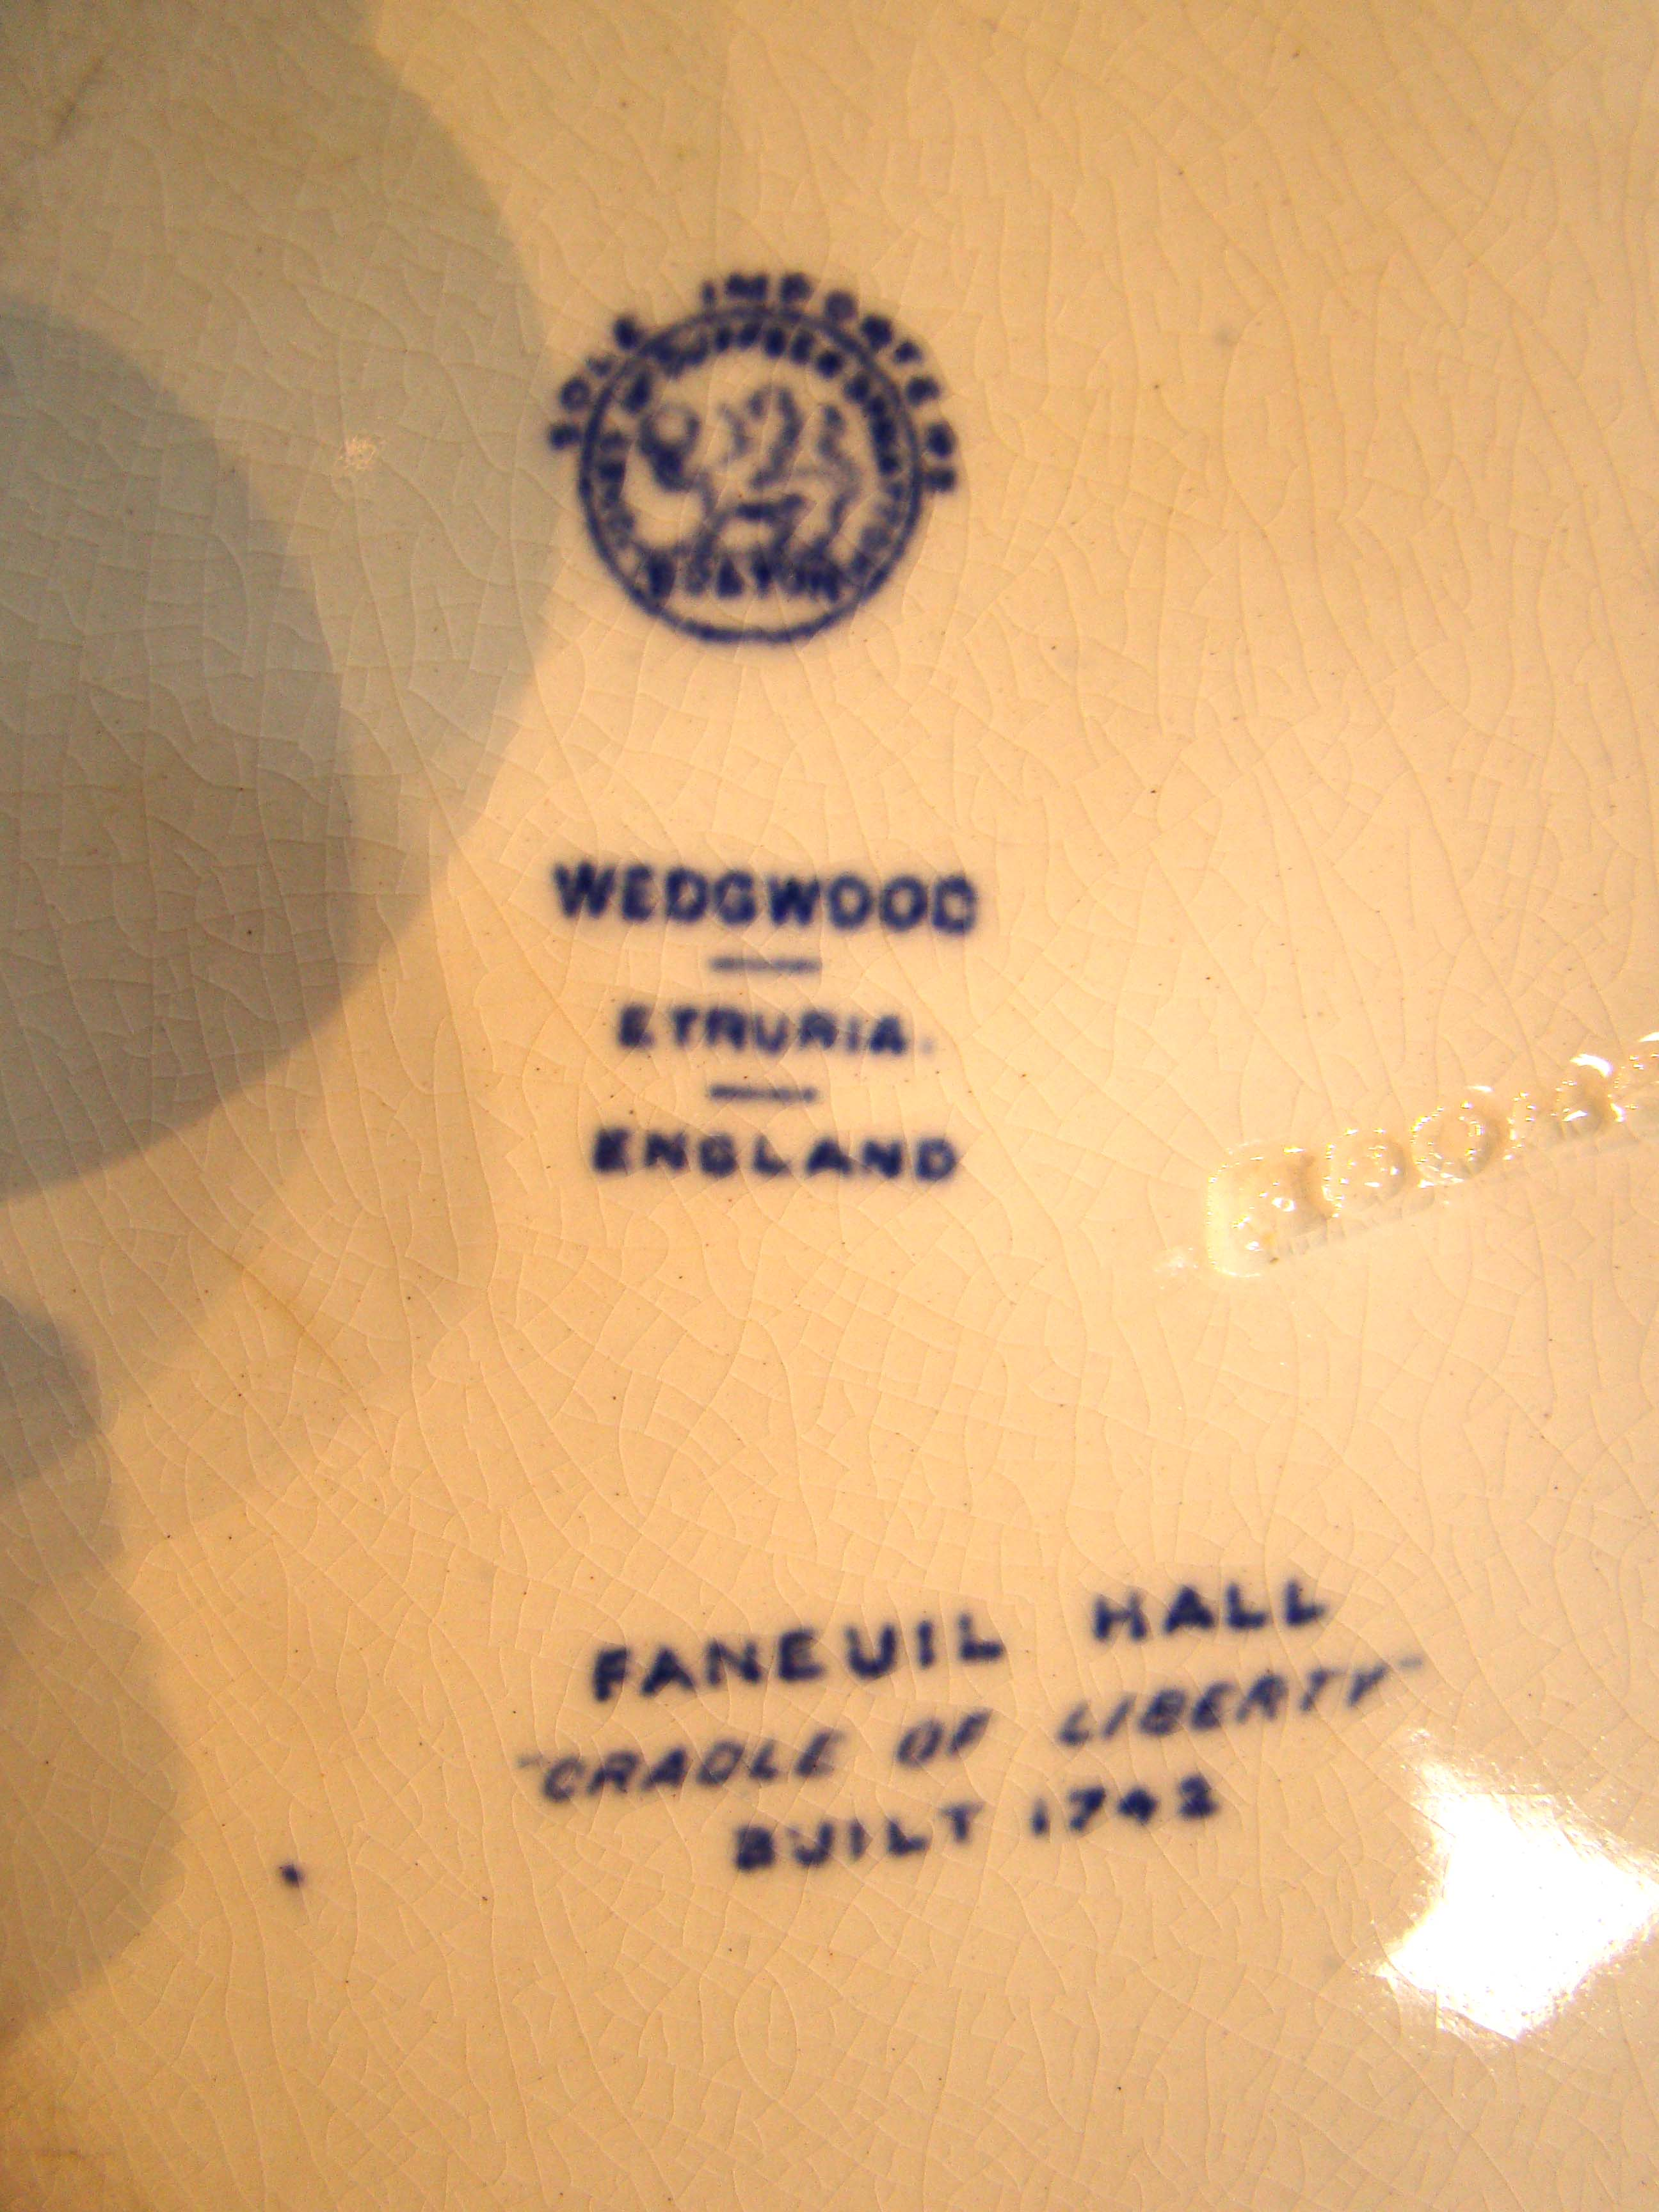 click to view larger image of A fine Wegwood souvenir plate made in 1899 depicting Faneuil Hall in Boston